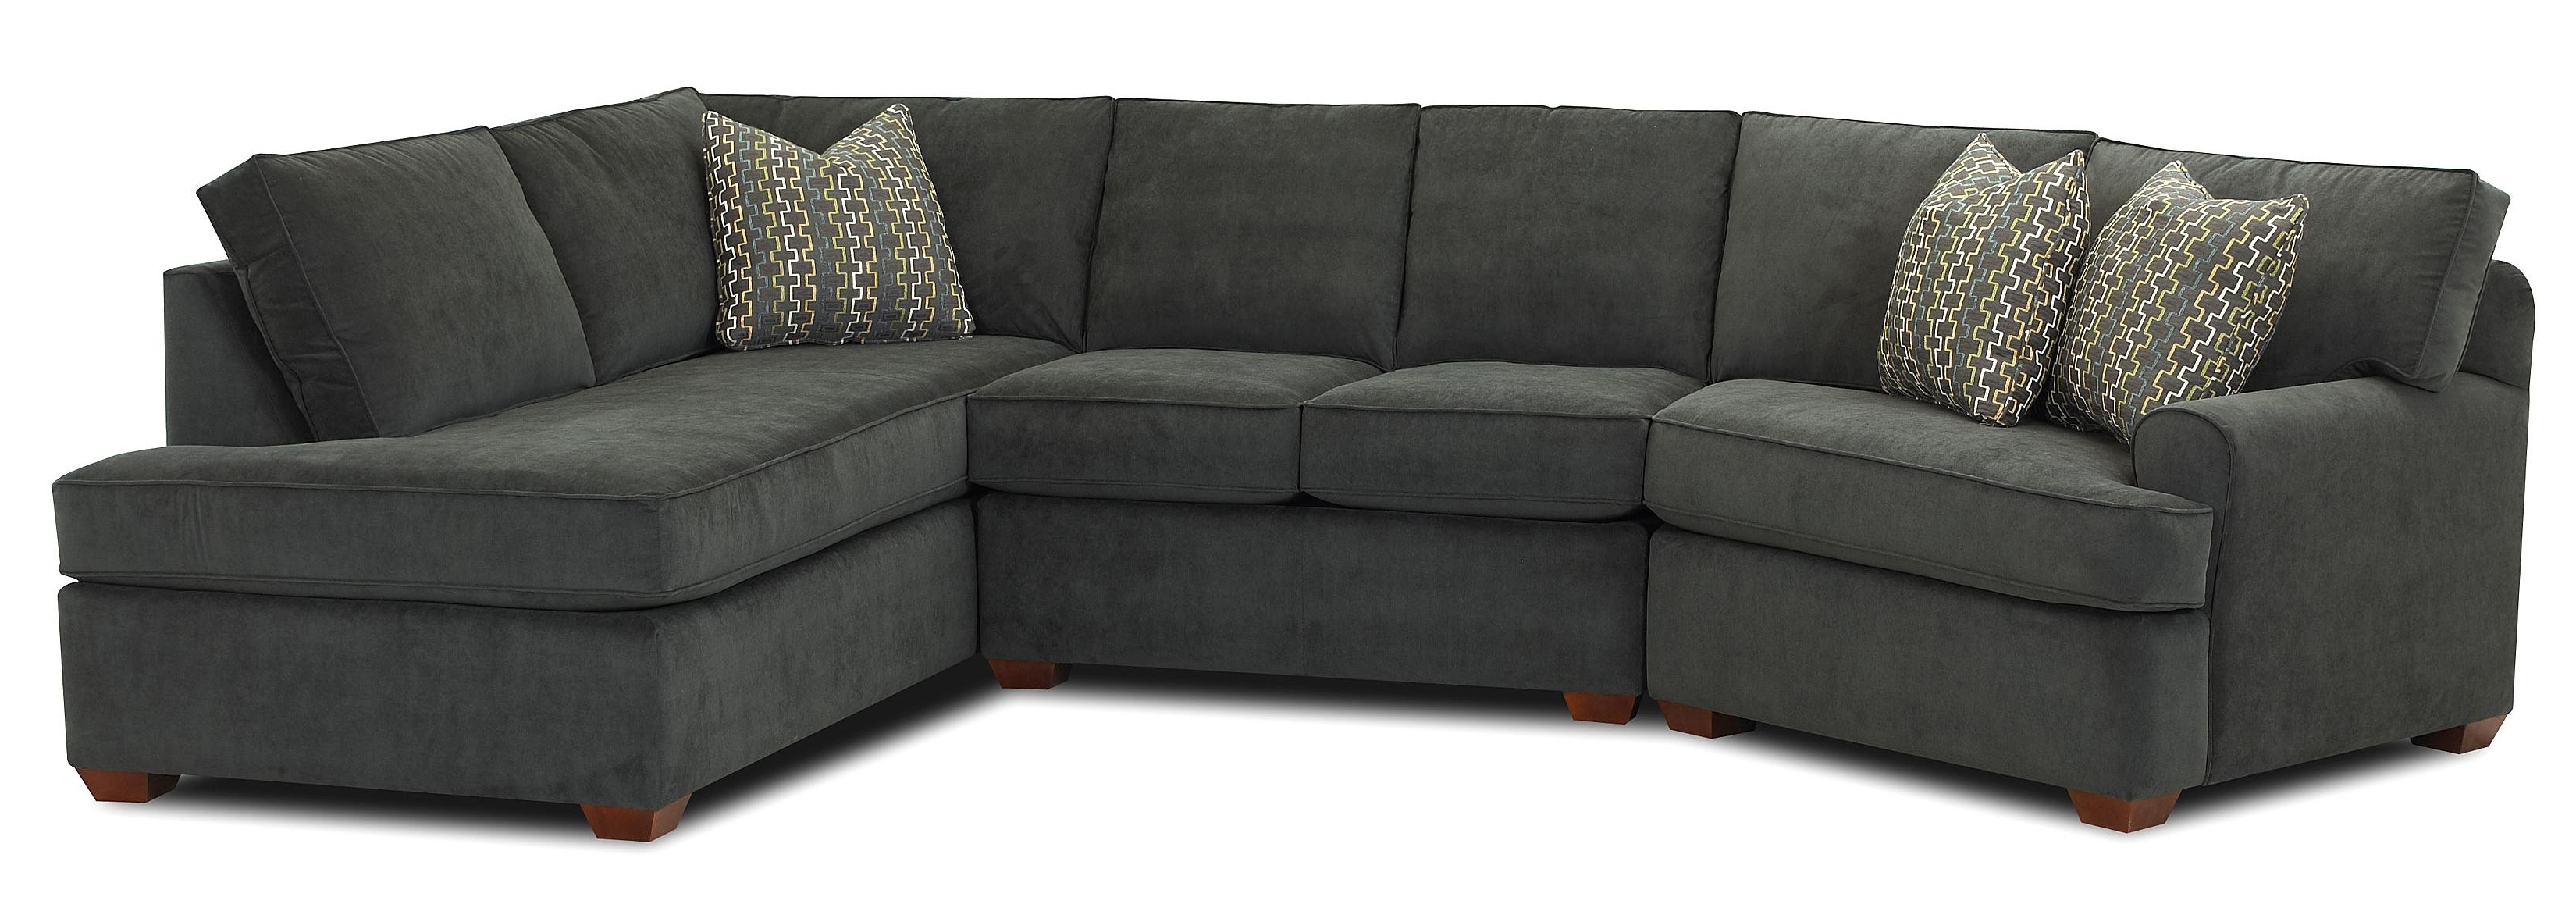 Sofa ~ Awesome Small Sectional Sofa With Chaise Hayward Small Ash Inside Well Liked Small Chaise Sofas (View 12 of 15)